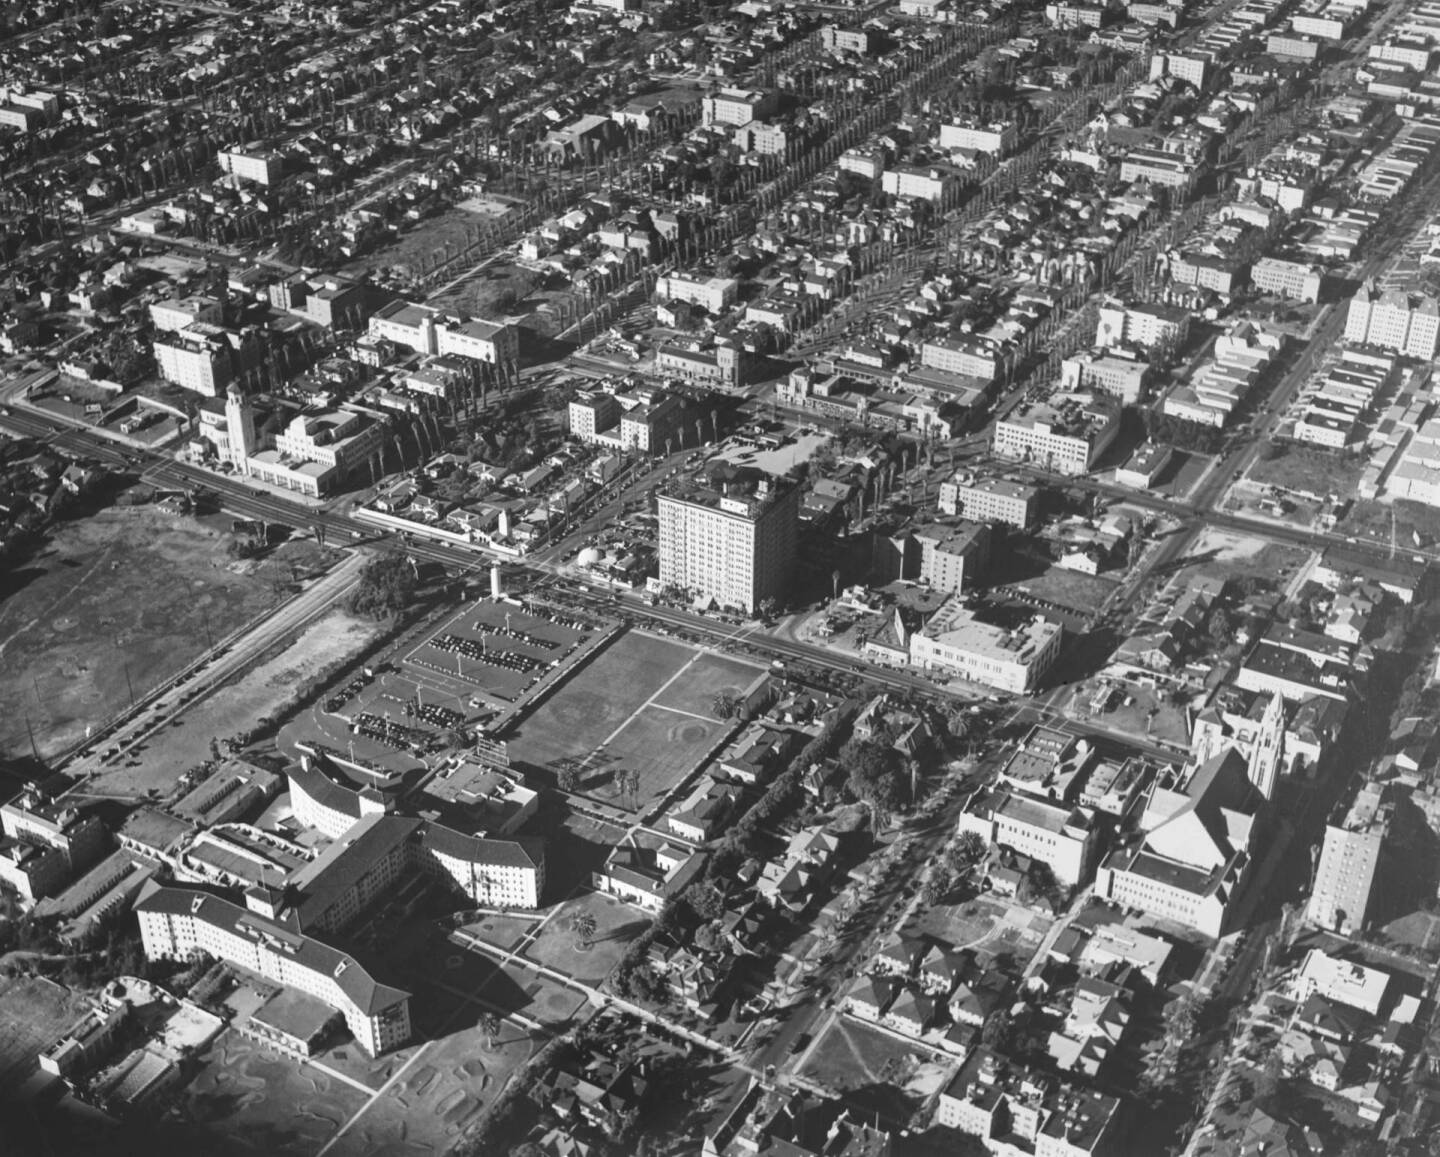 Aerial view of the Ambassador Hotel in 1940